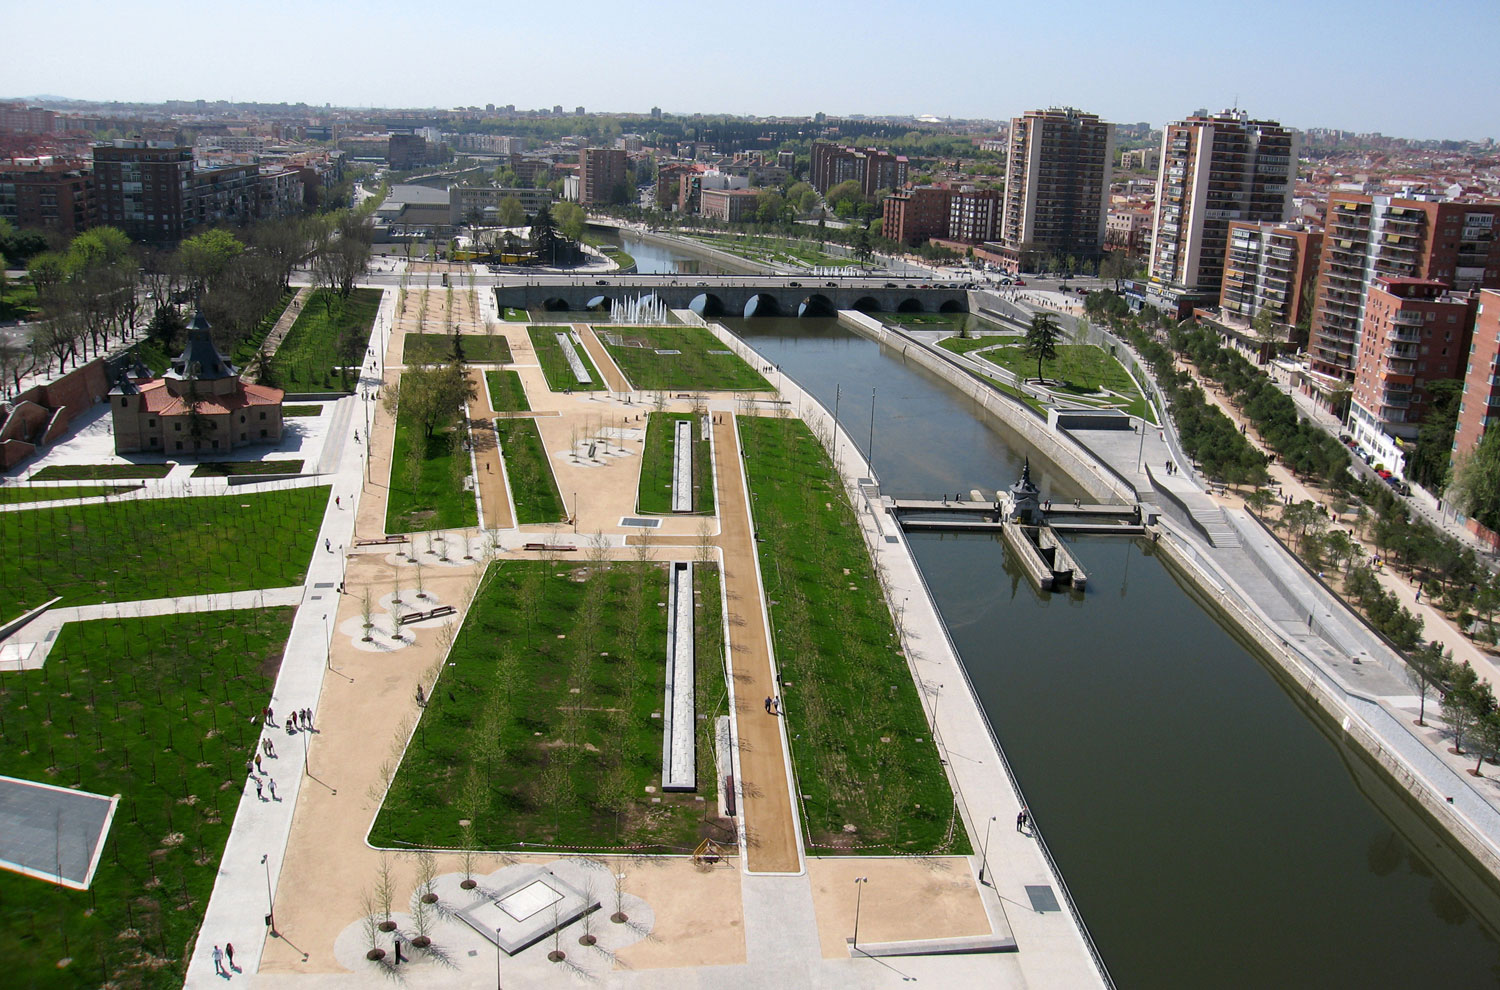 Madrid Río linear park